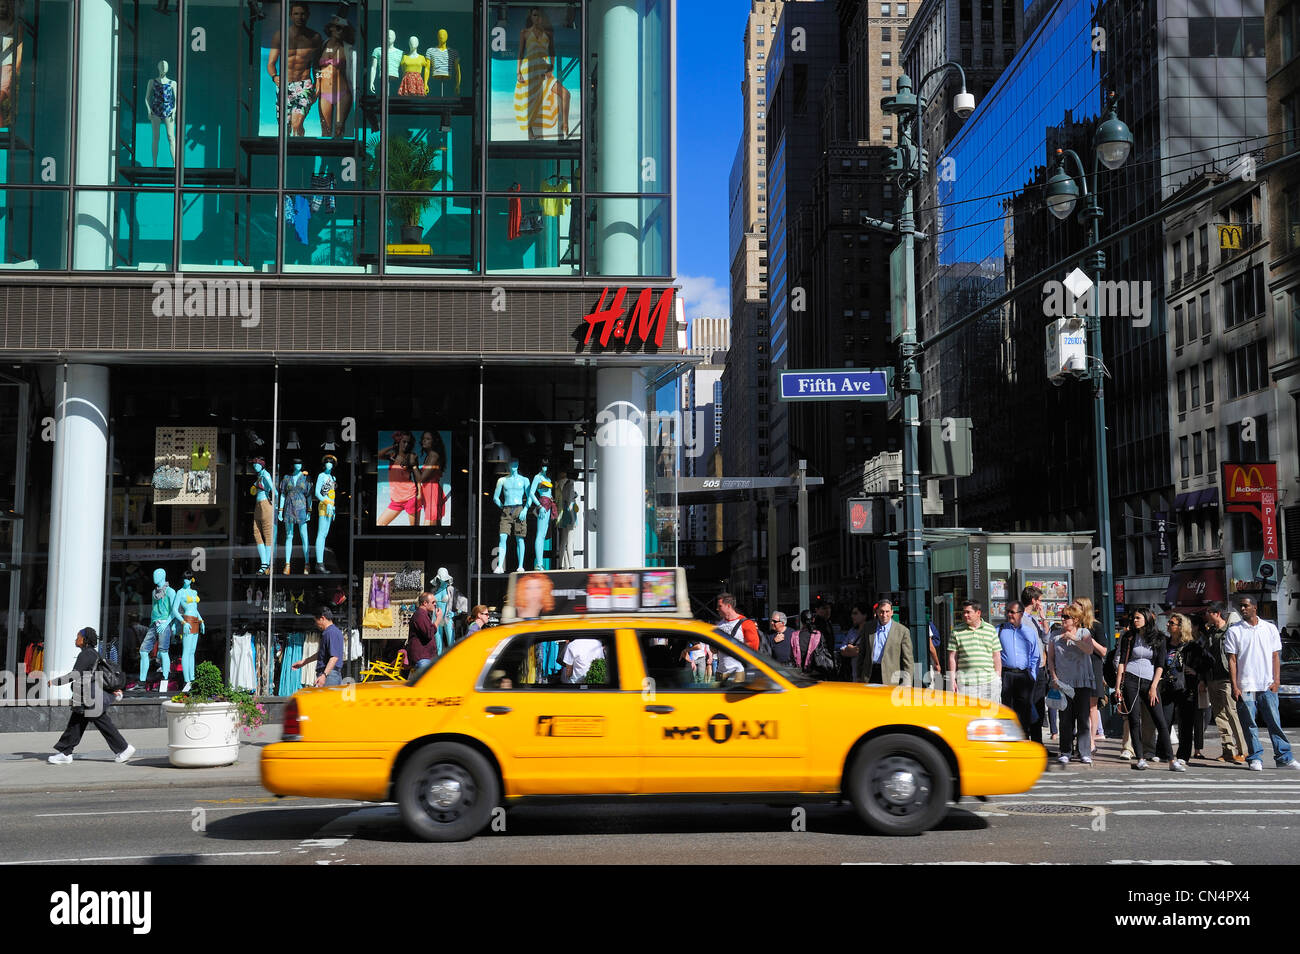 United States, New York, Manhattan, Midtown, 5th Avenue and 42nd Street - Stock Image